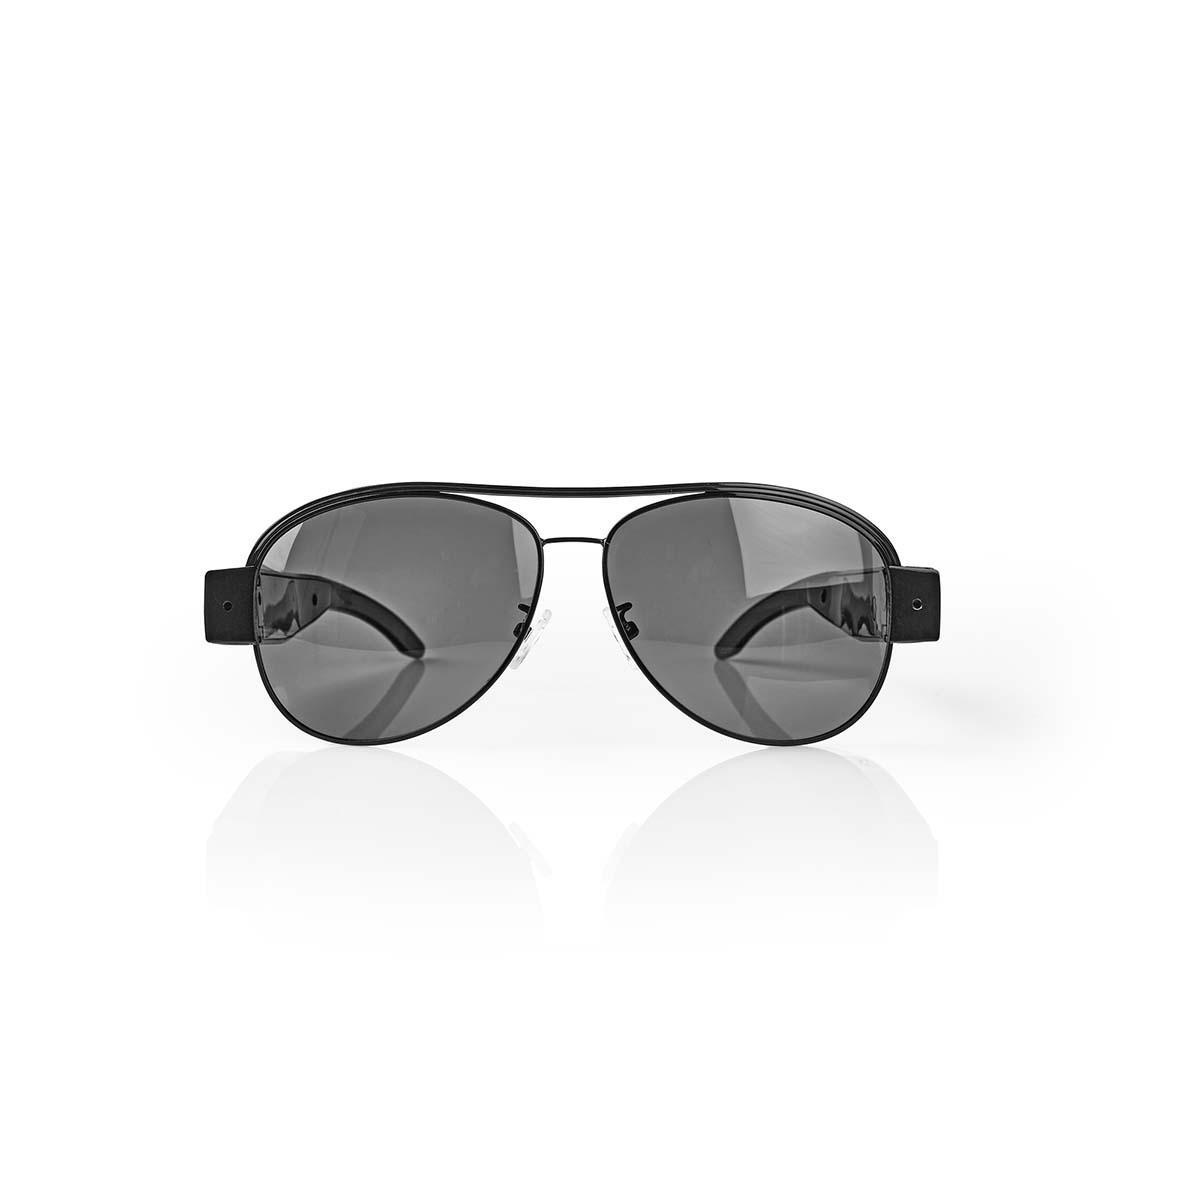 Sunglasses with Integrated Camera | 1920x1080 video | 4032x3024 photo | Rechargeable